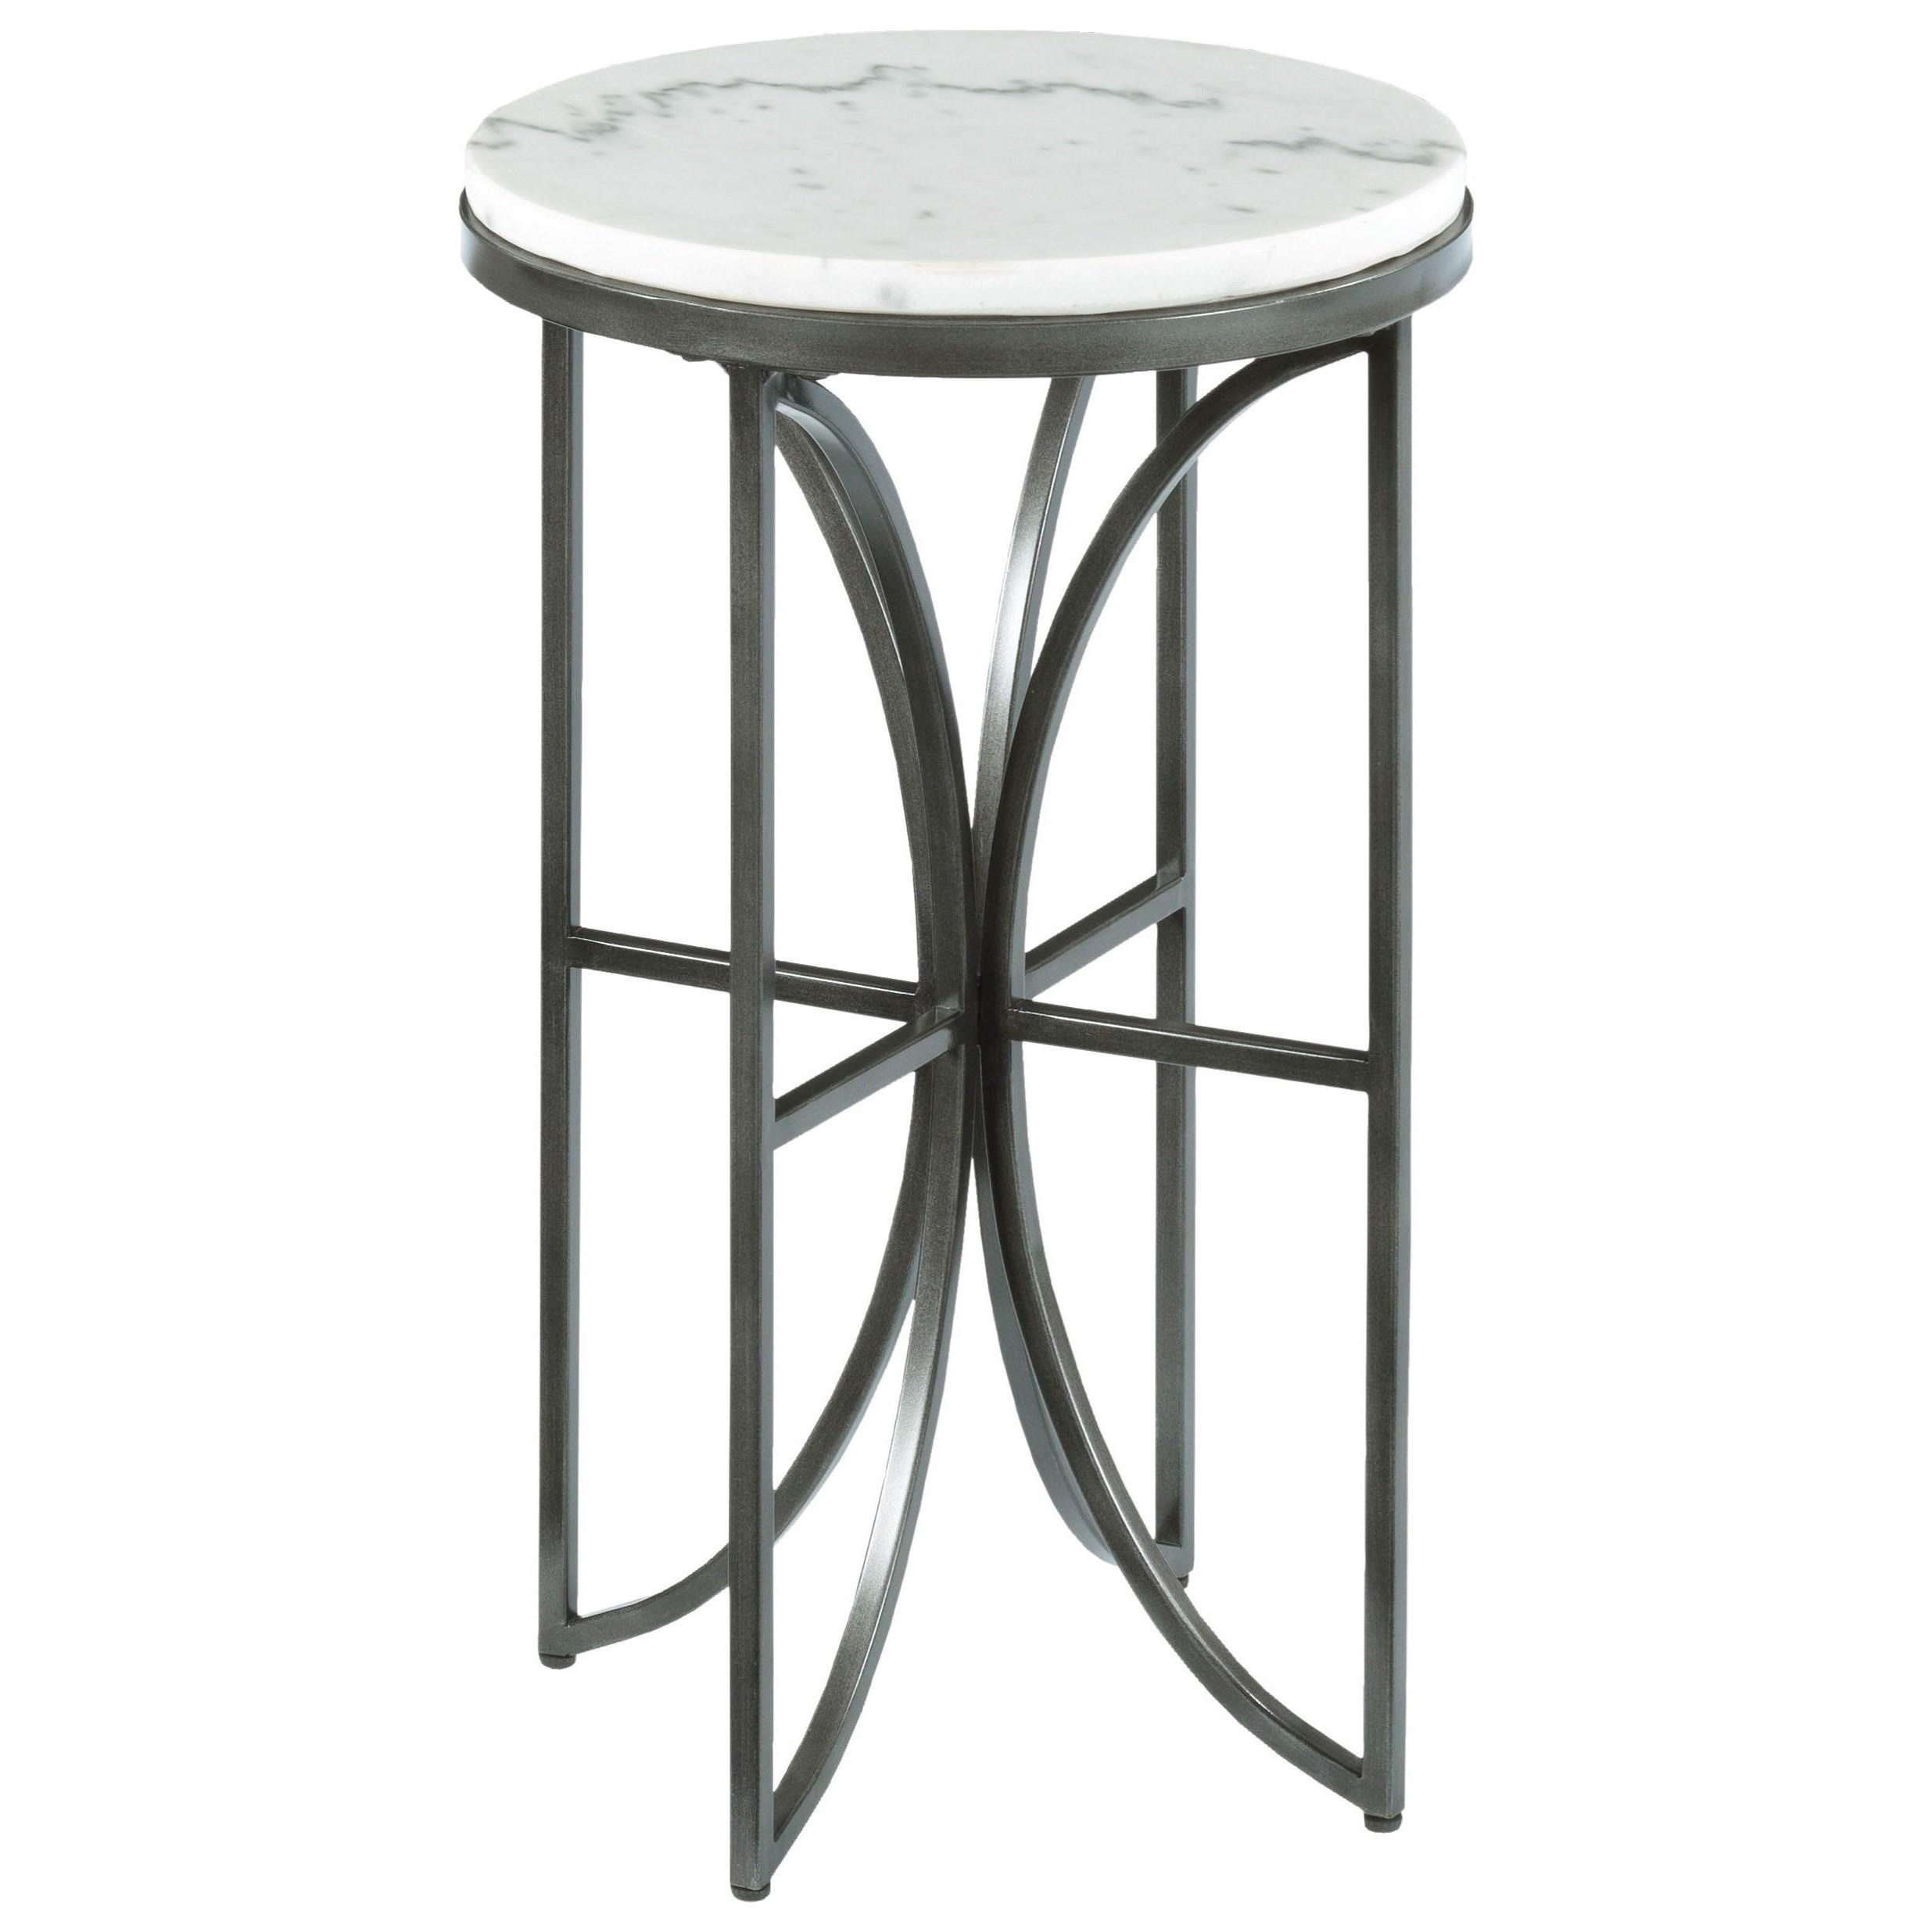 small round accent table with marble top by hammary wolf and gardiner wolf furniture. Black Bedroom Furniture Sets. Home Design Ideas